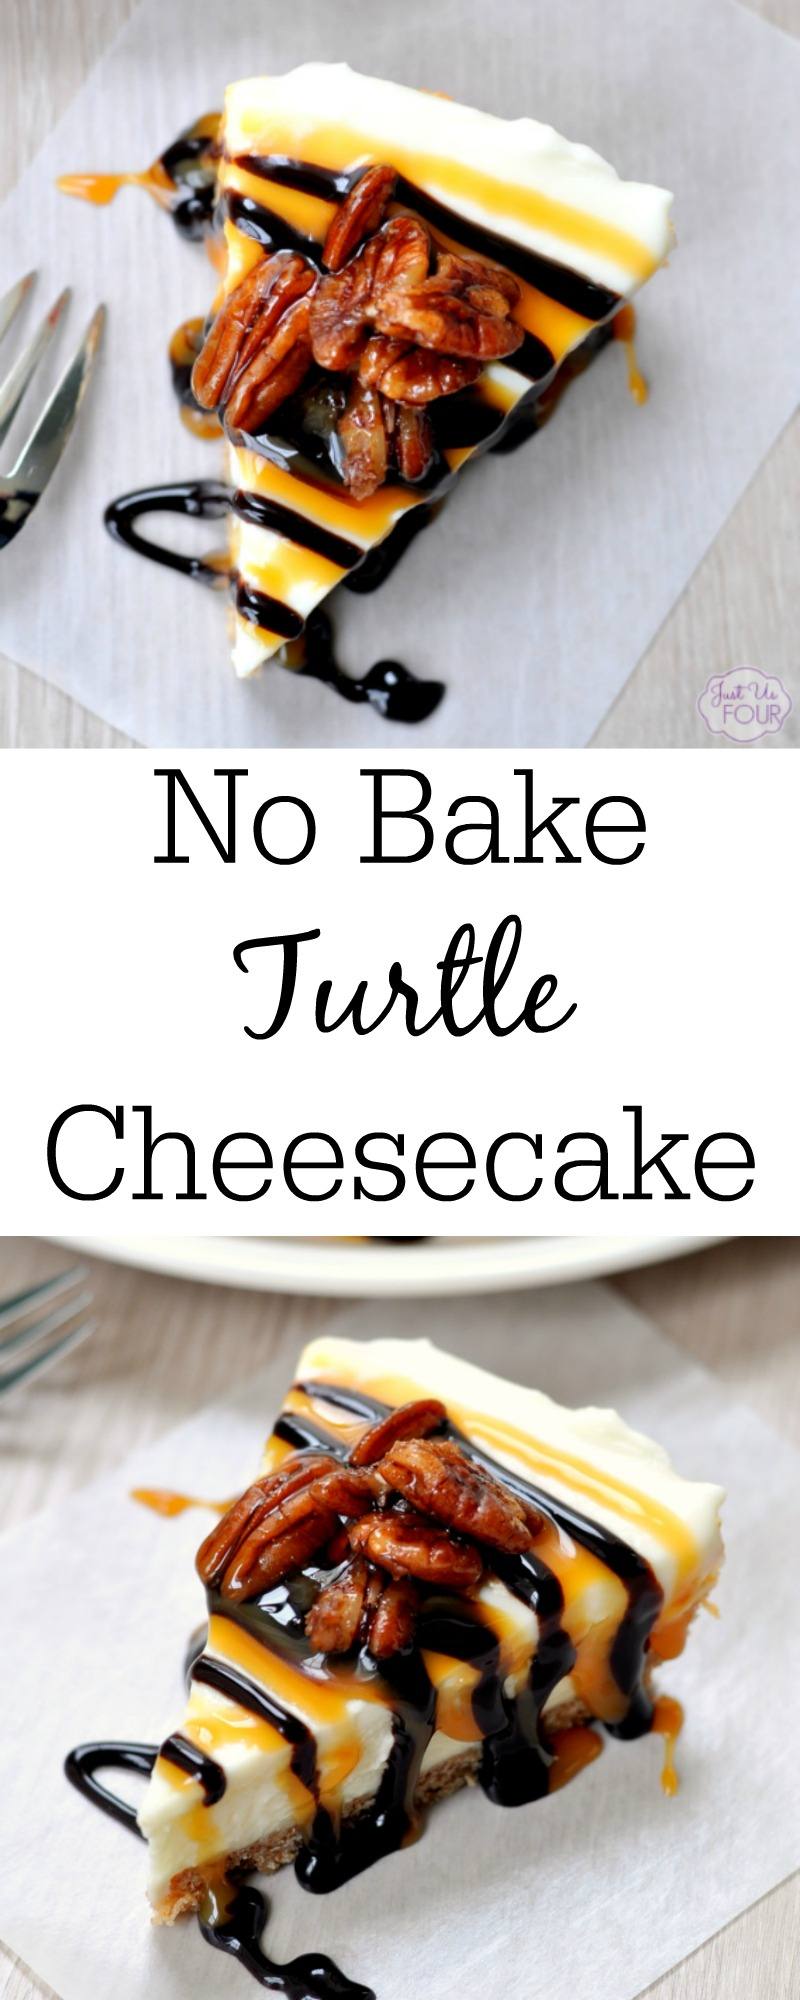 No Bake Turtle Cheesecake